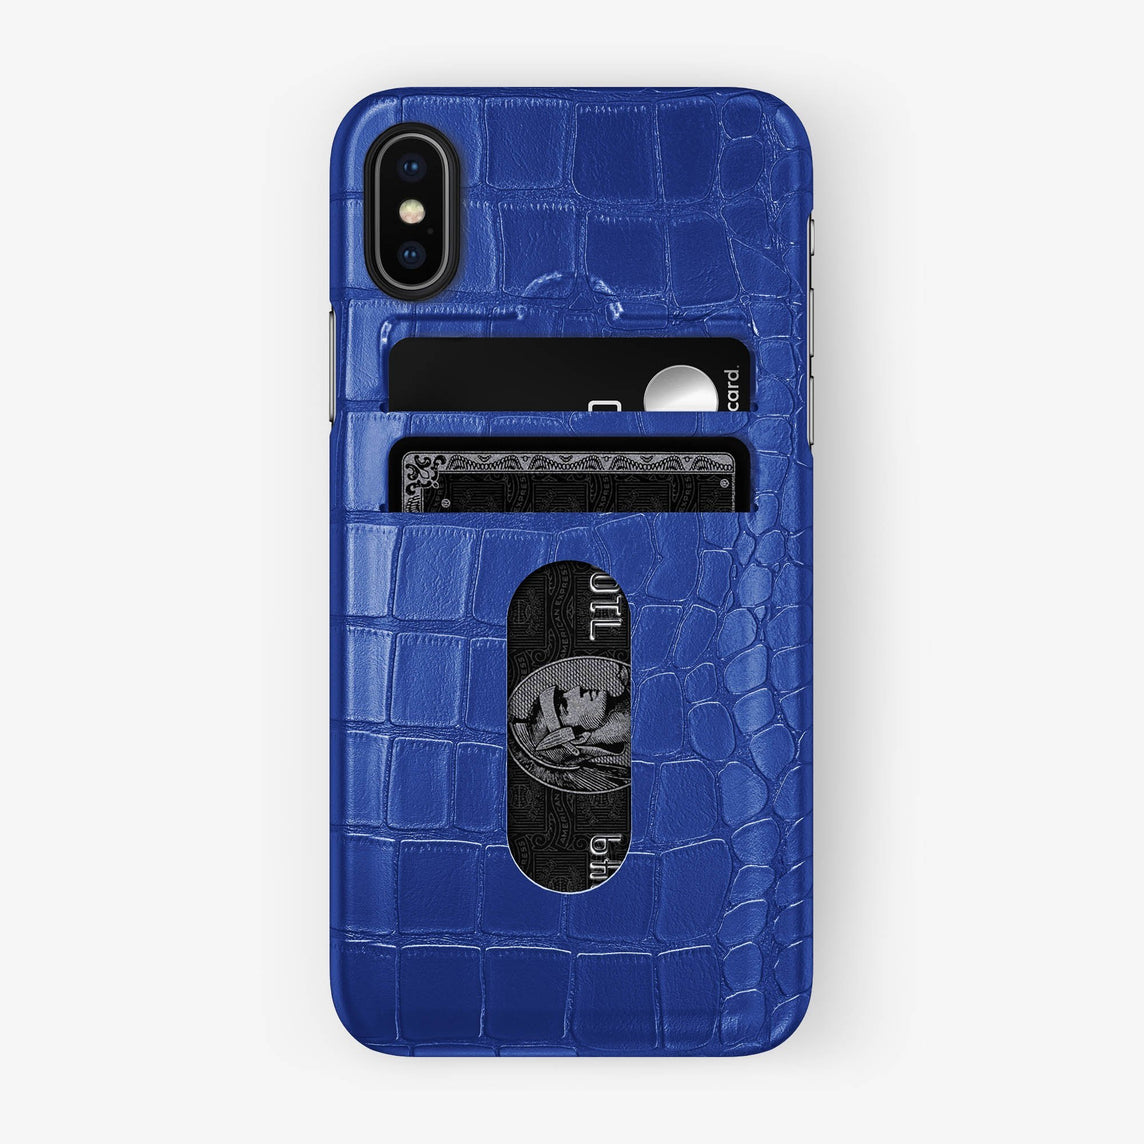 Alligator Card Holder Case iPhone X/Xs | Peony Blue - Black with-personalization